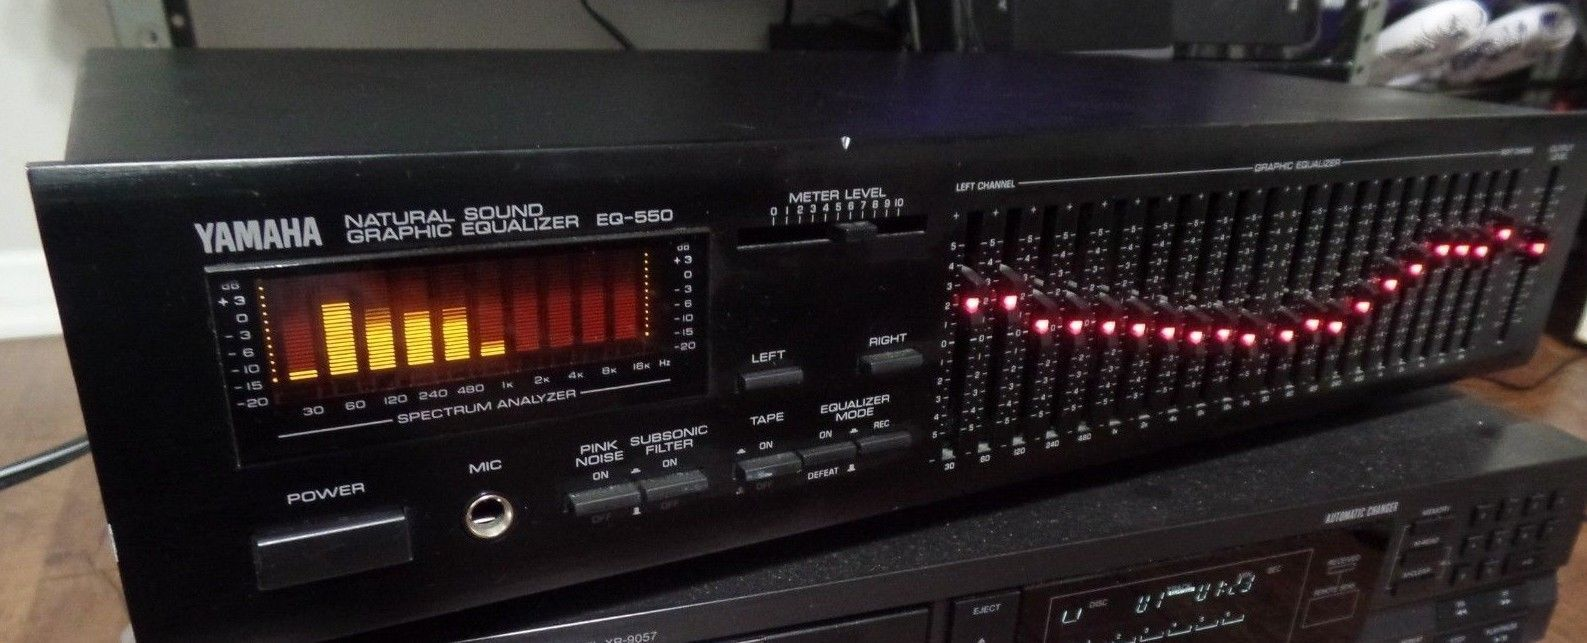 Details about YAMAHA EQ-550 NATURAL SOUND GRAPHIC EQUALIZER in 2019